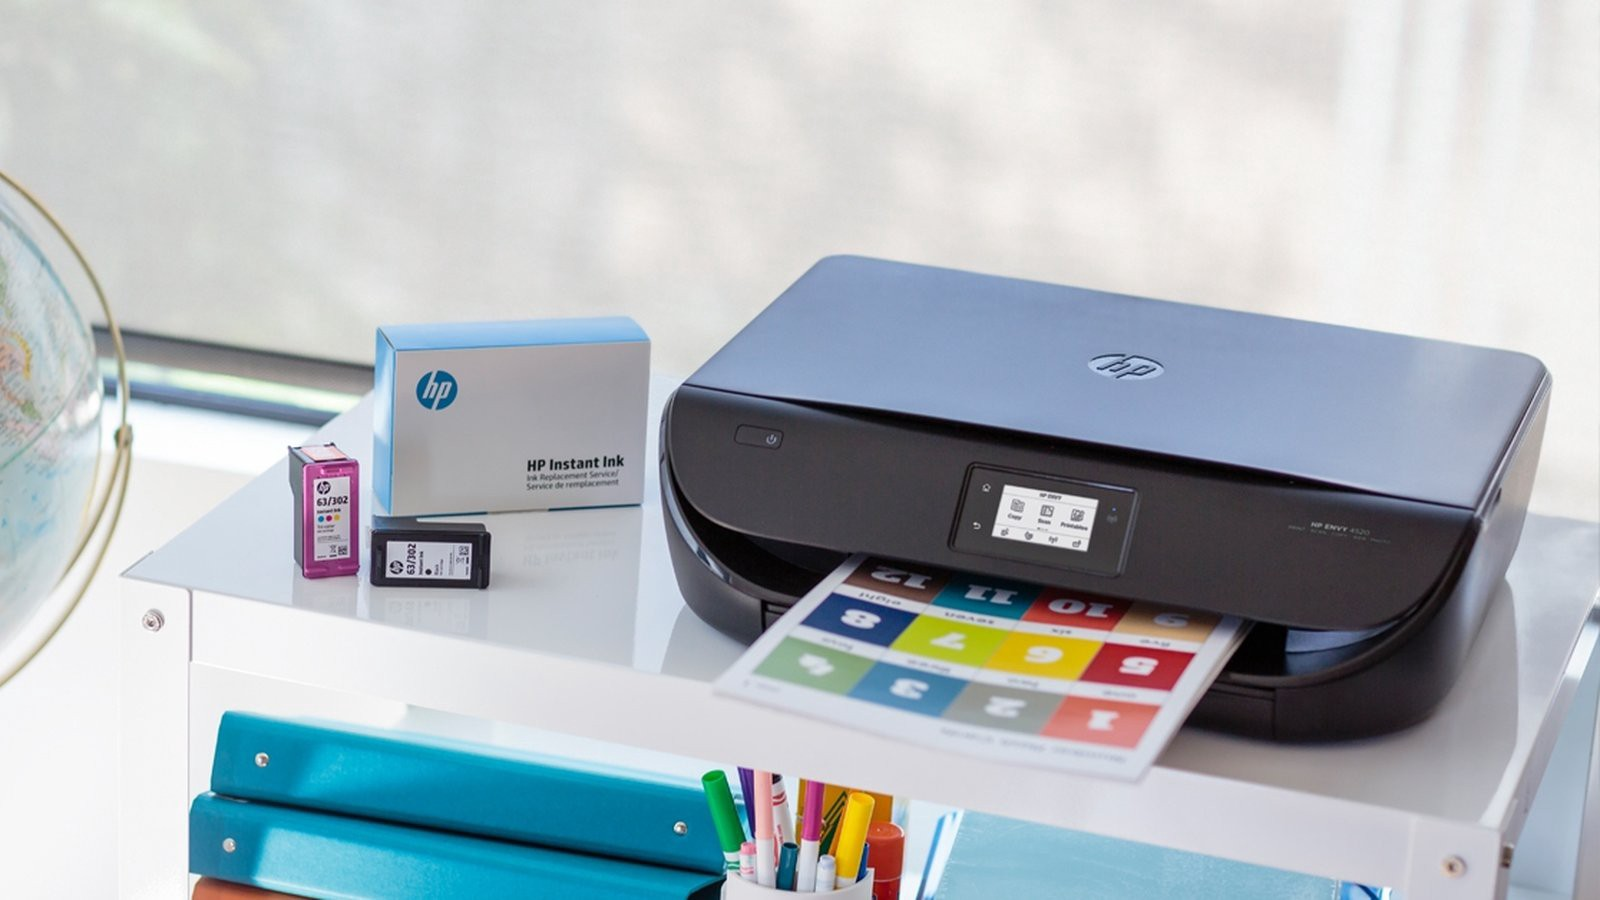 HP PRINTER ENVY 6255 - excreamburg - Medium